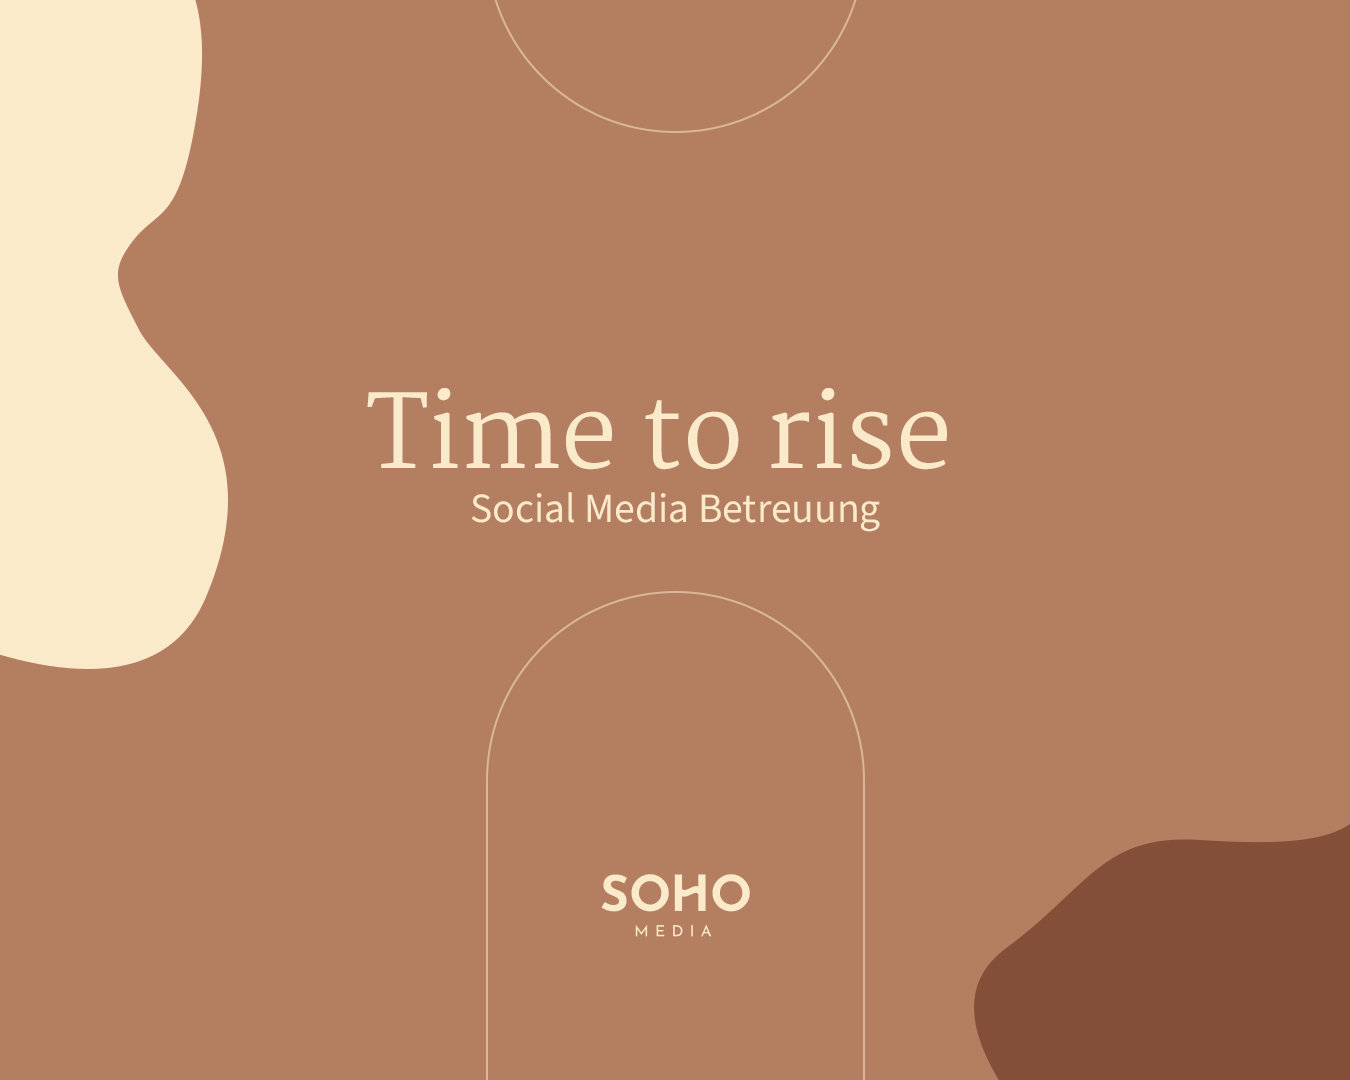 Social Media Betreuung - Time to Rise